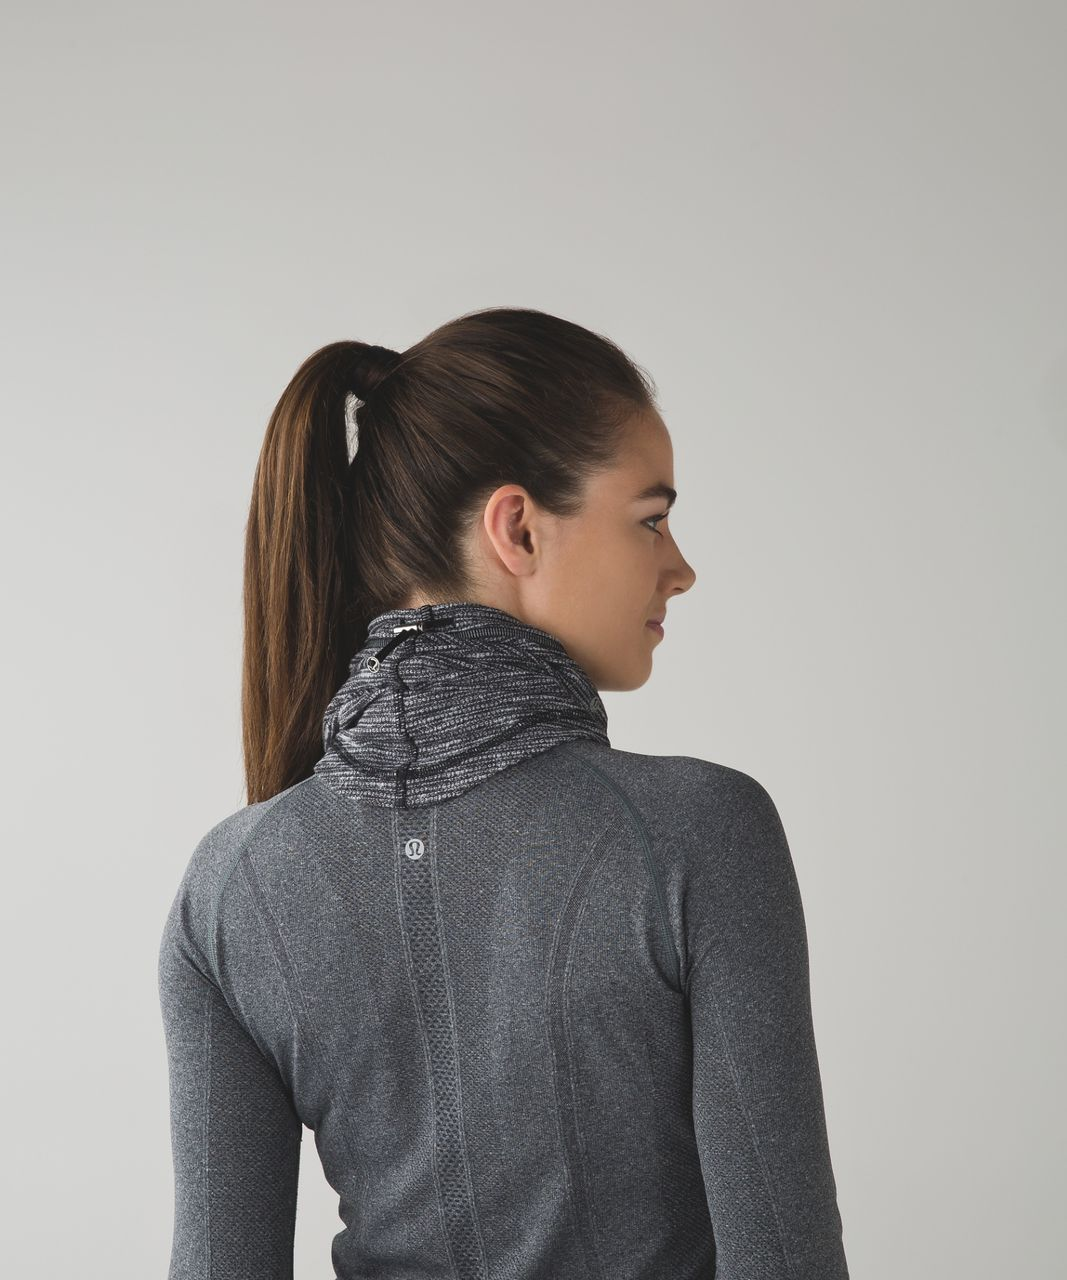 Lululemon Run And Done Neck Warmer - Coco Pique Black White